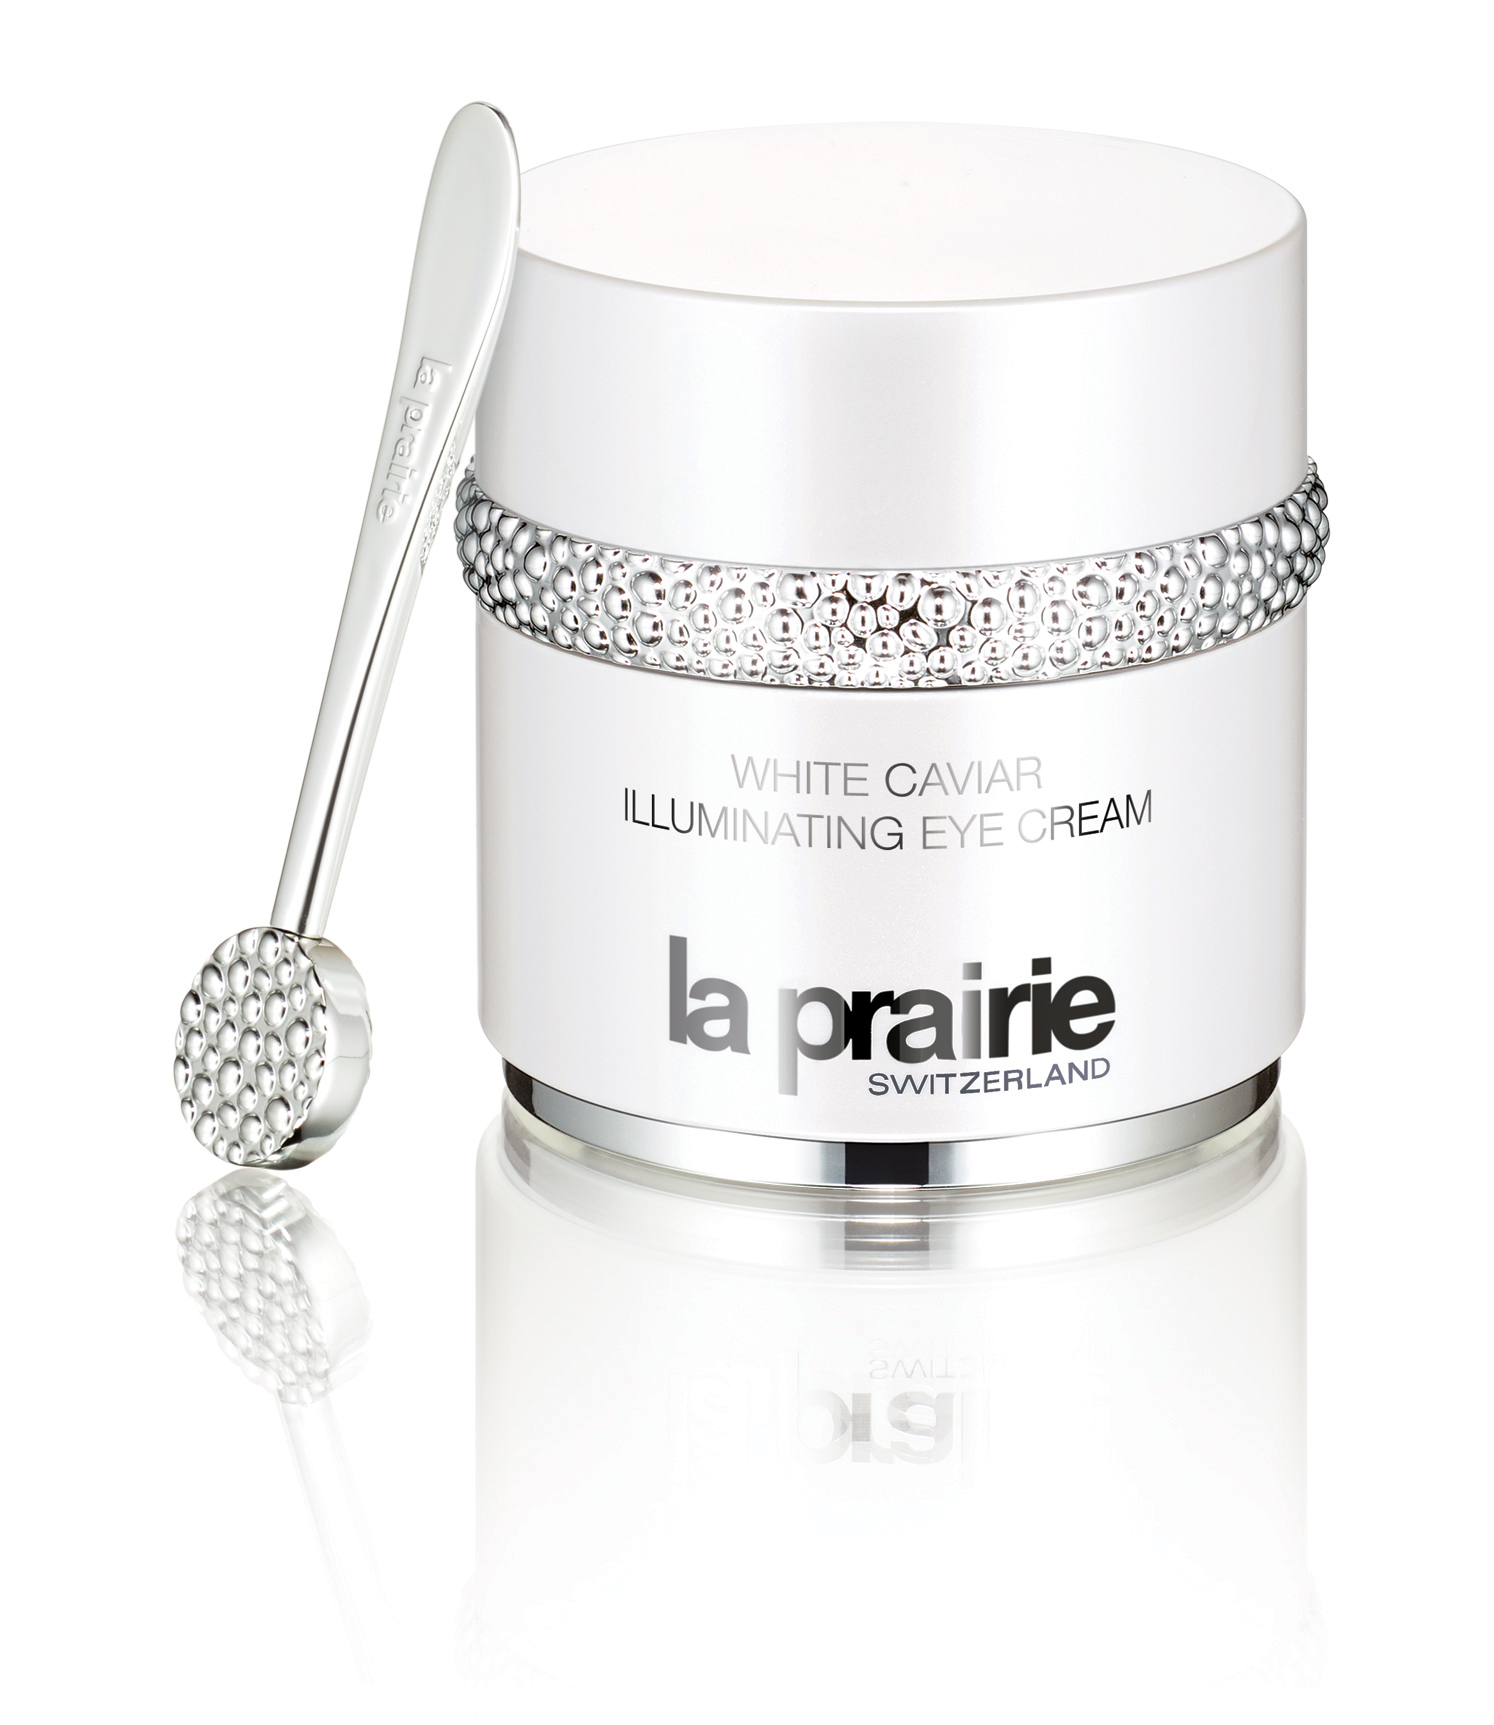 La Prairie (White Caviar Illuminating Eye Cream) 20 ml